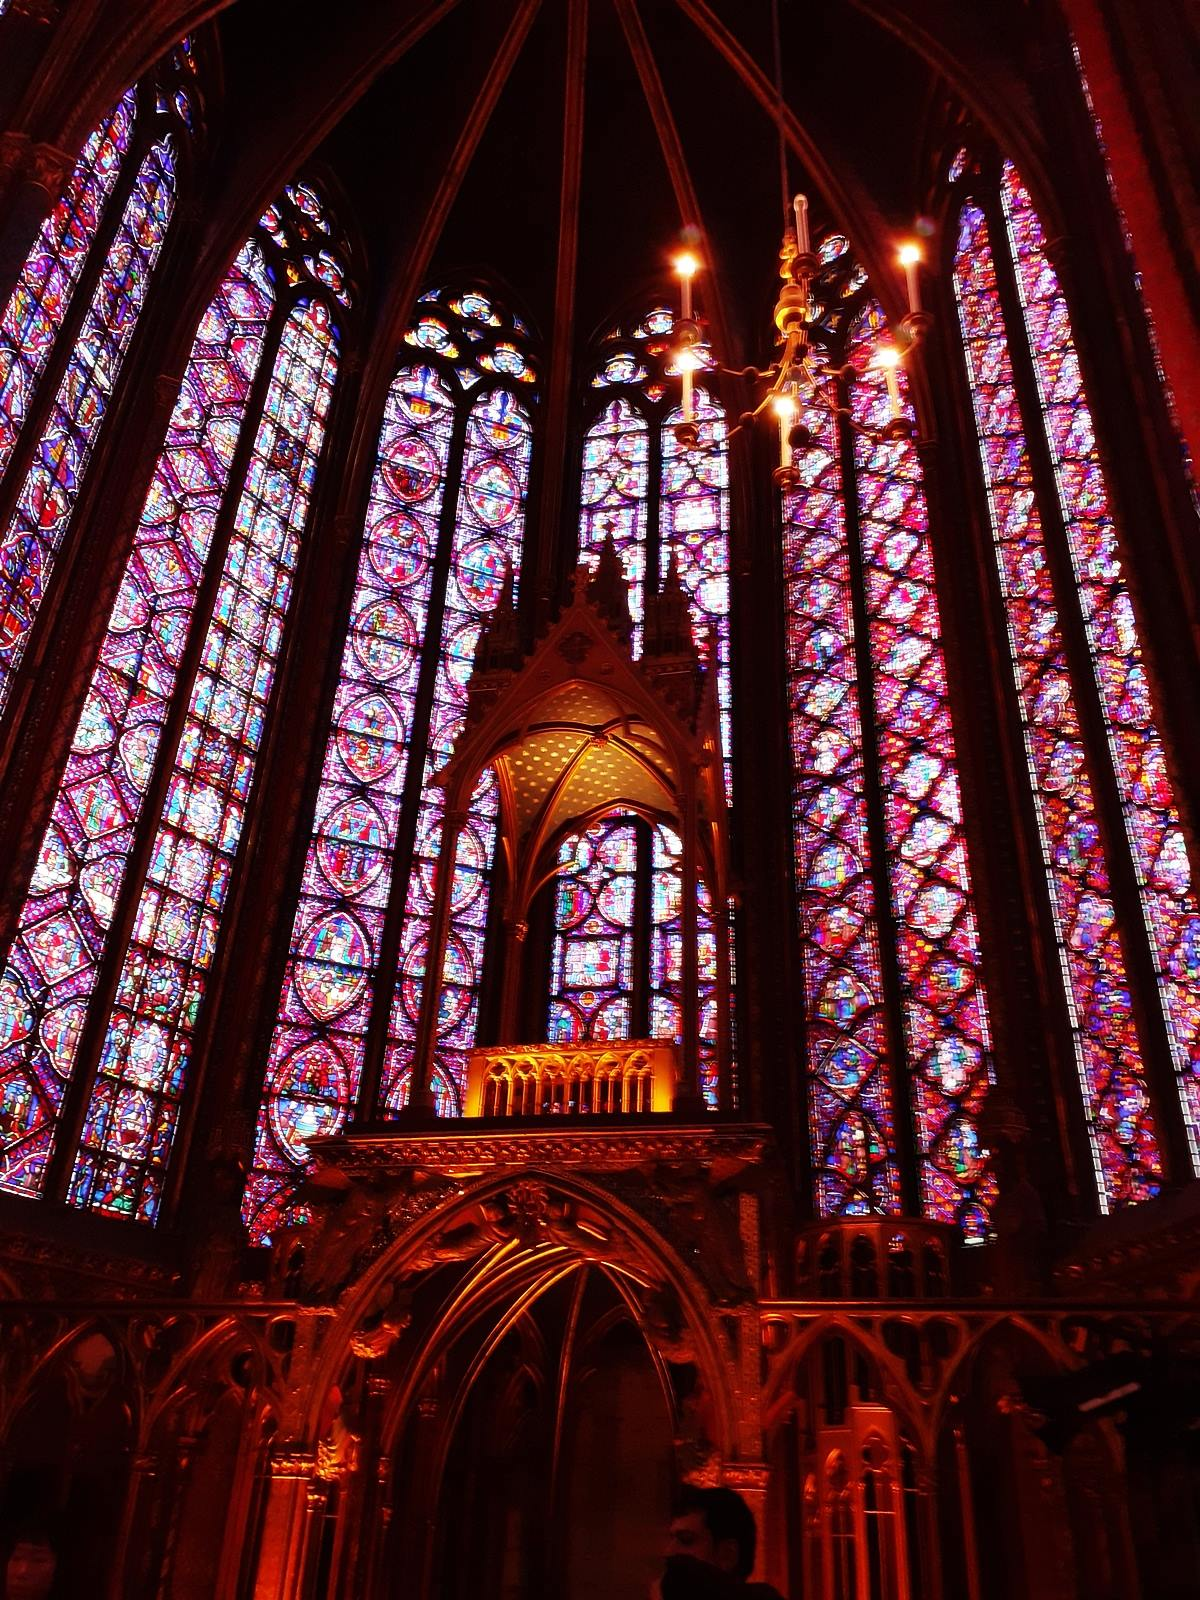 La sainte chapelle paris cite chateletsainte chapelle paris 12